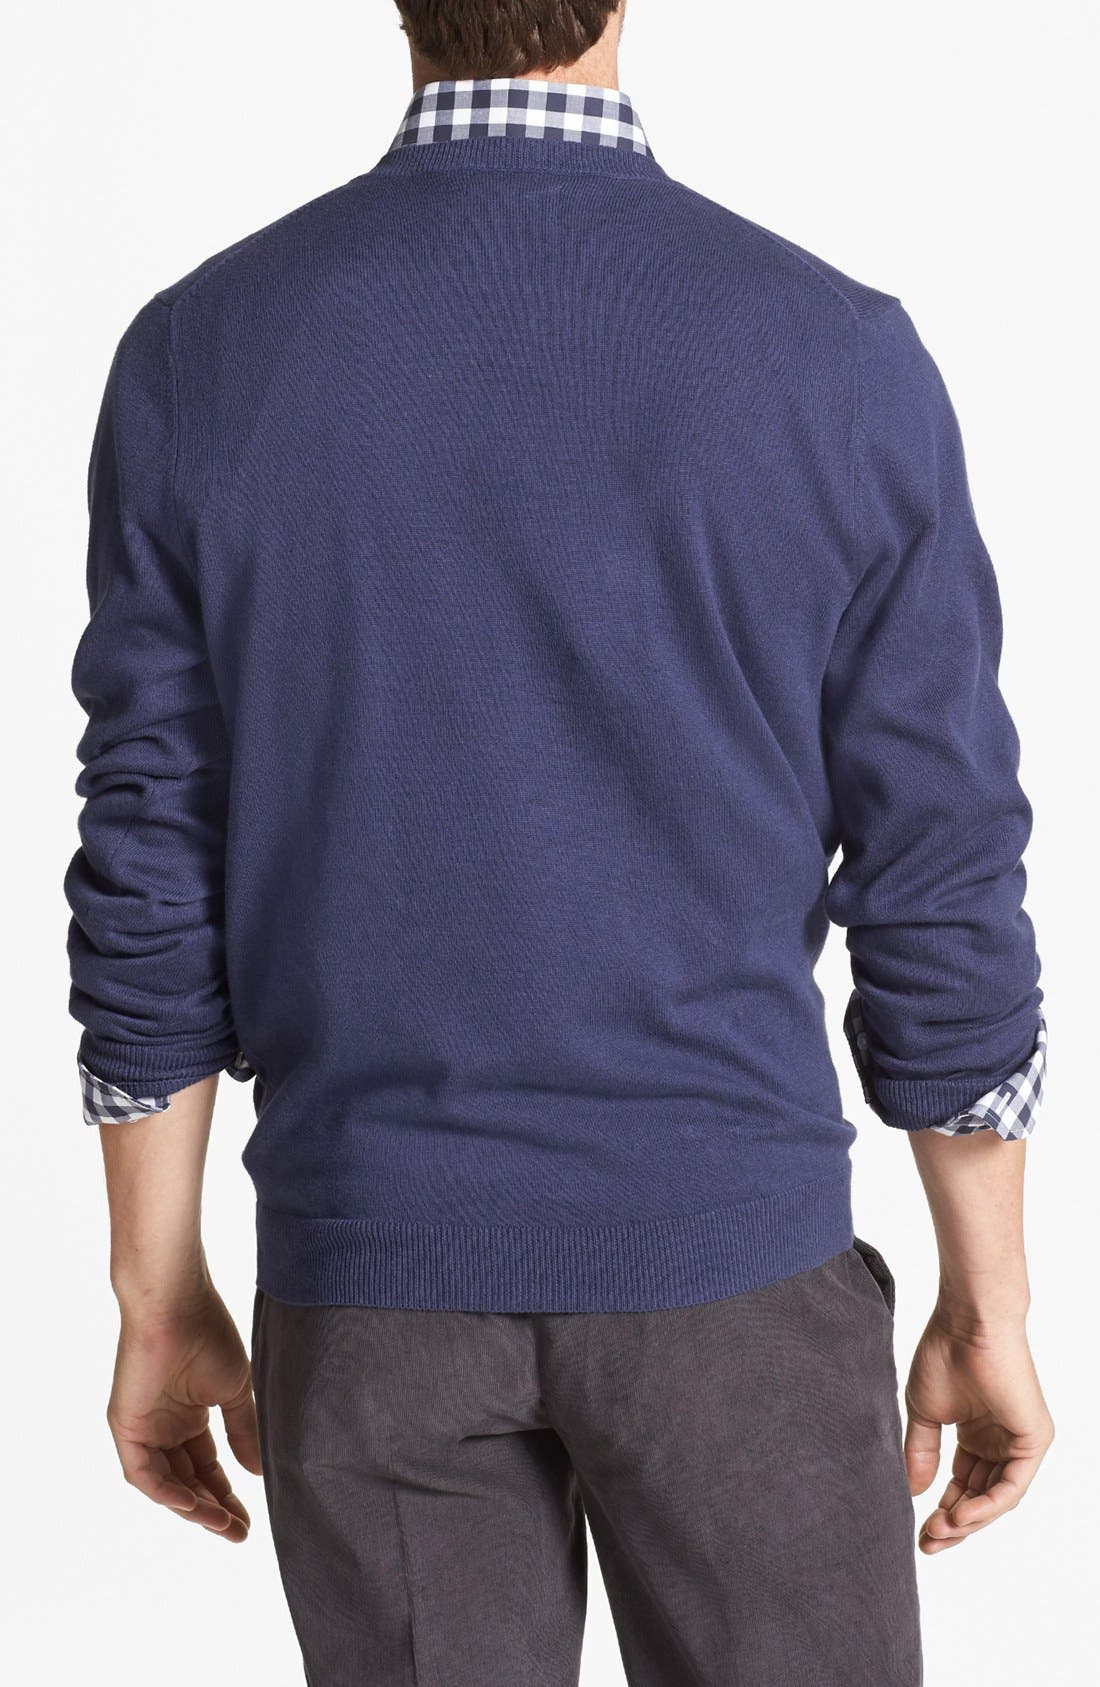 Alternate Image 2  - Wallin & Bros. Trim Fit V-Neck Cotton & Cashmere Sweater